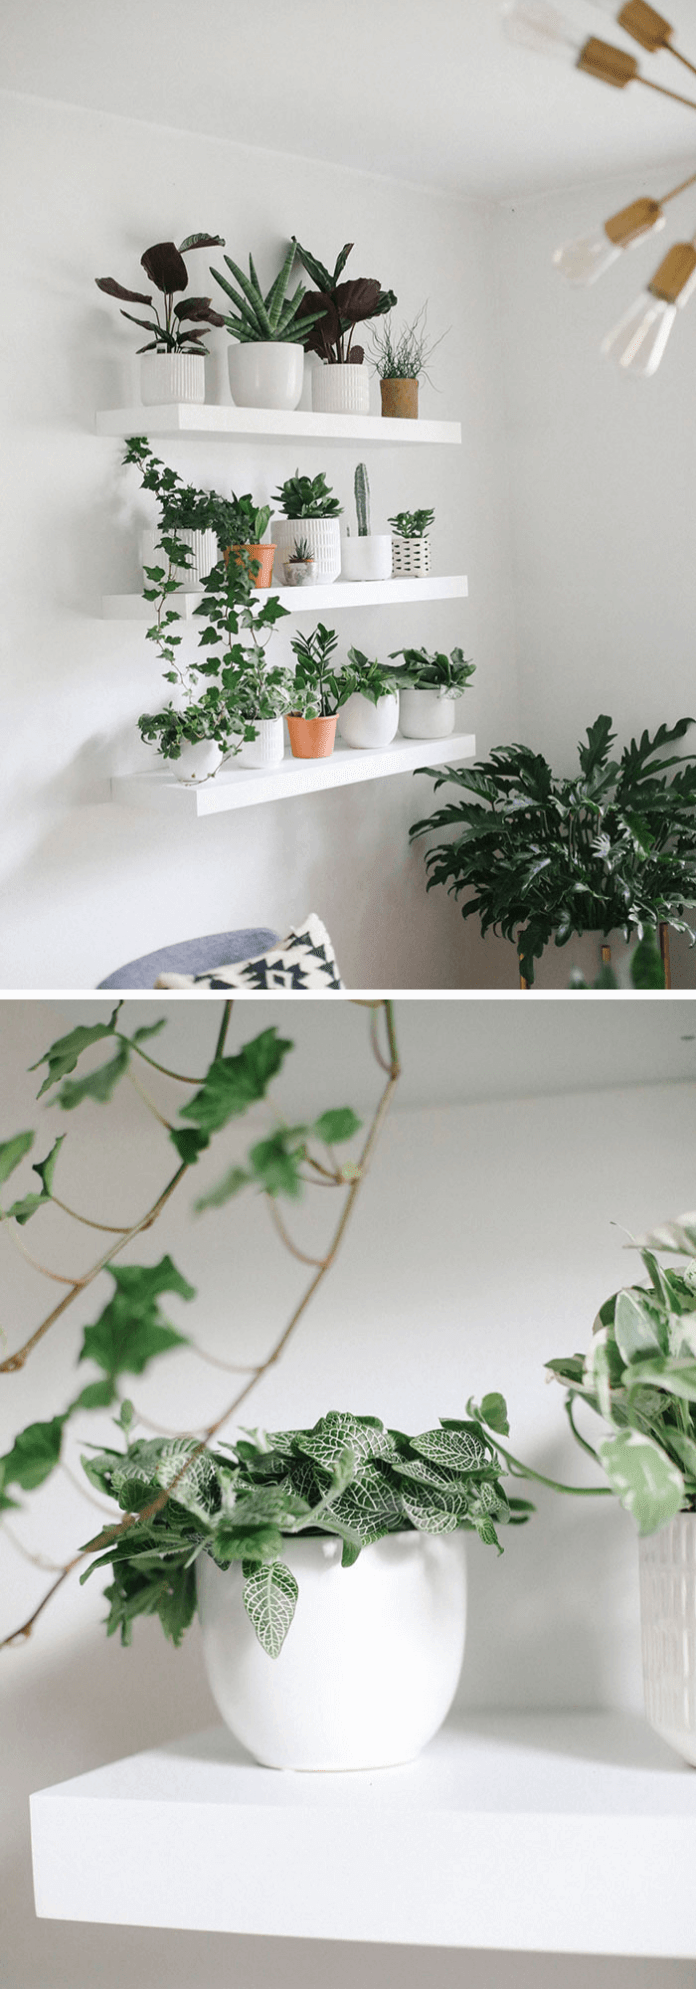 How to build an oxygen-filled plant wall